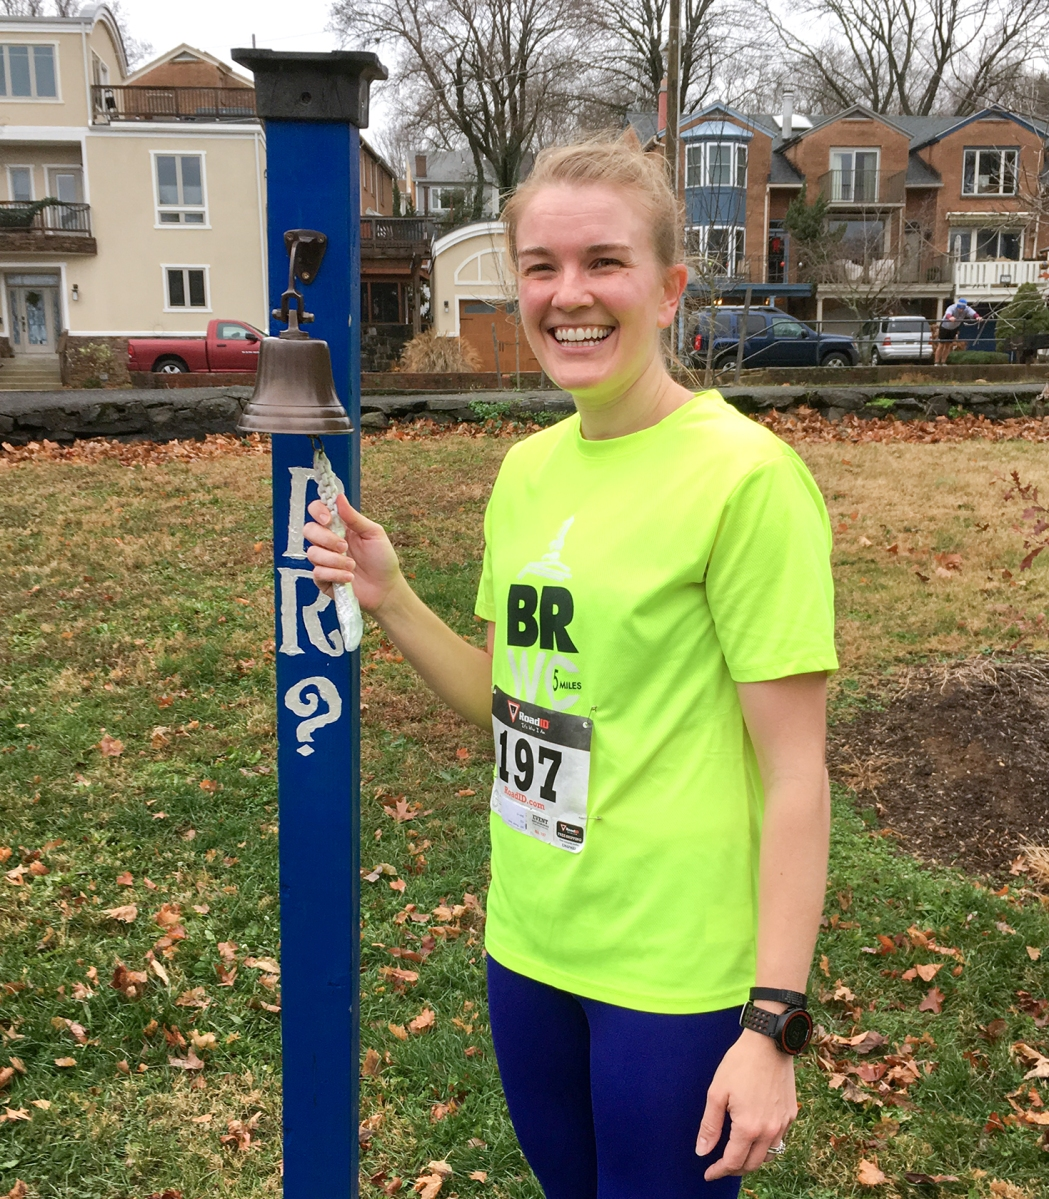 A New PR at the Delaware Downhill 5K!